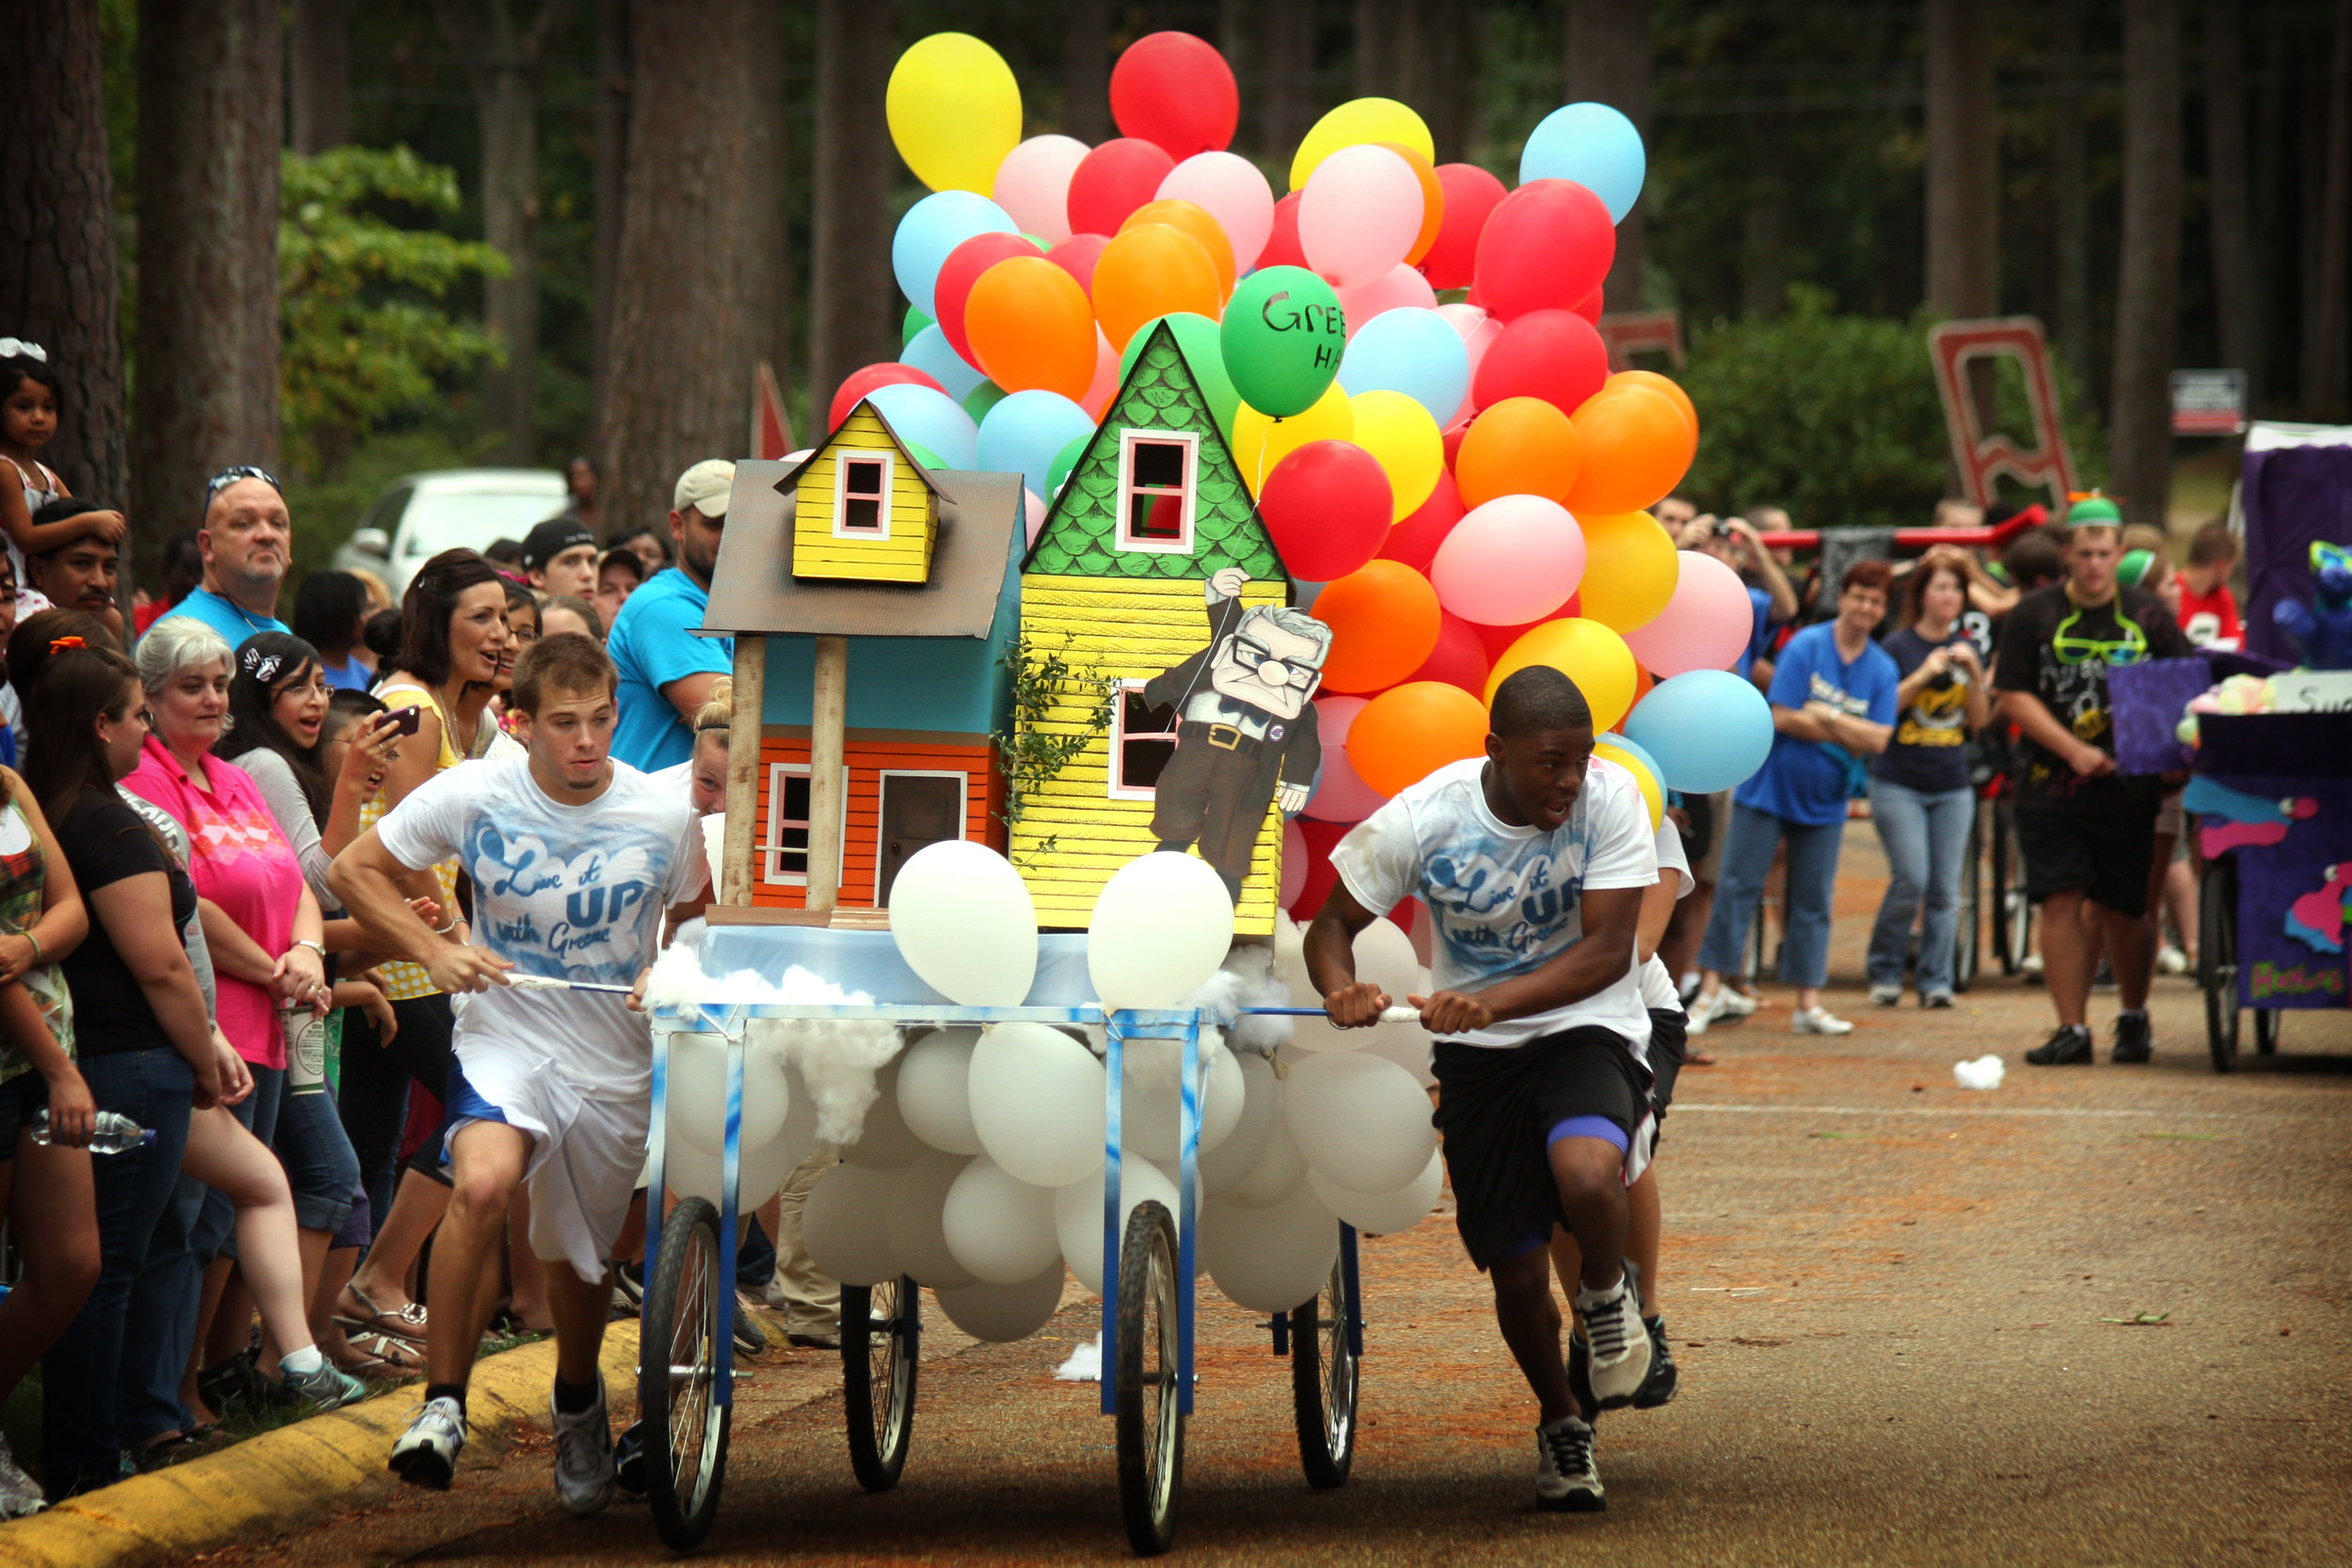 Southern_Arkansas_University's_Family_Day_bed_race.jpg